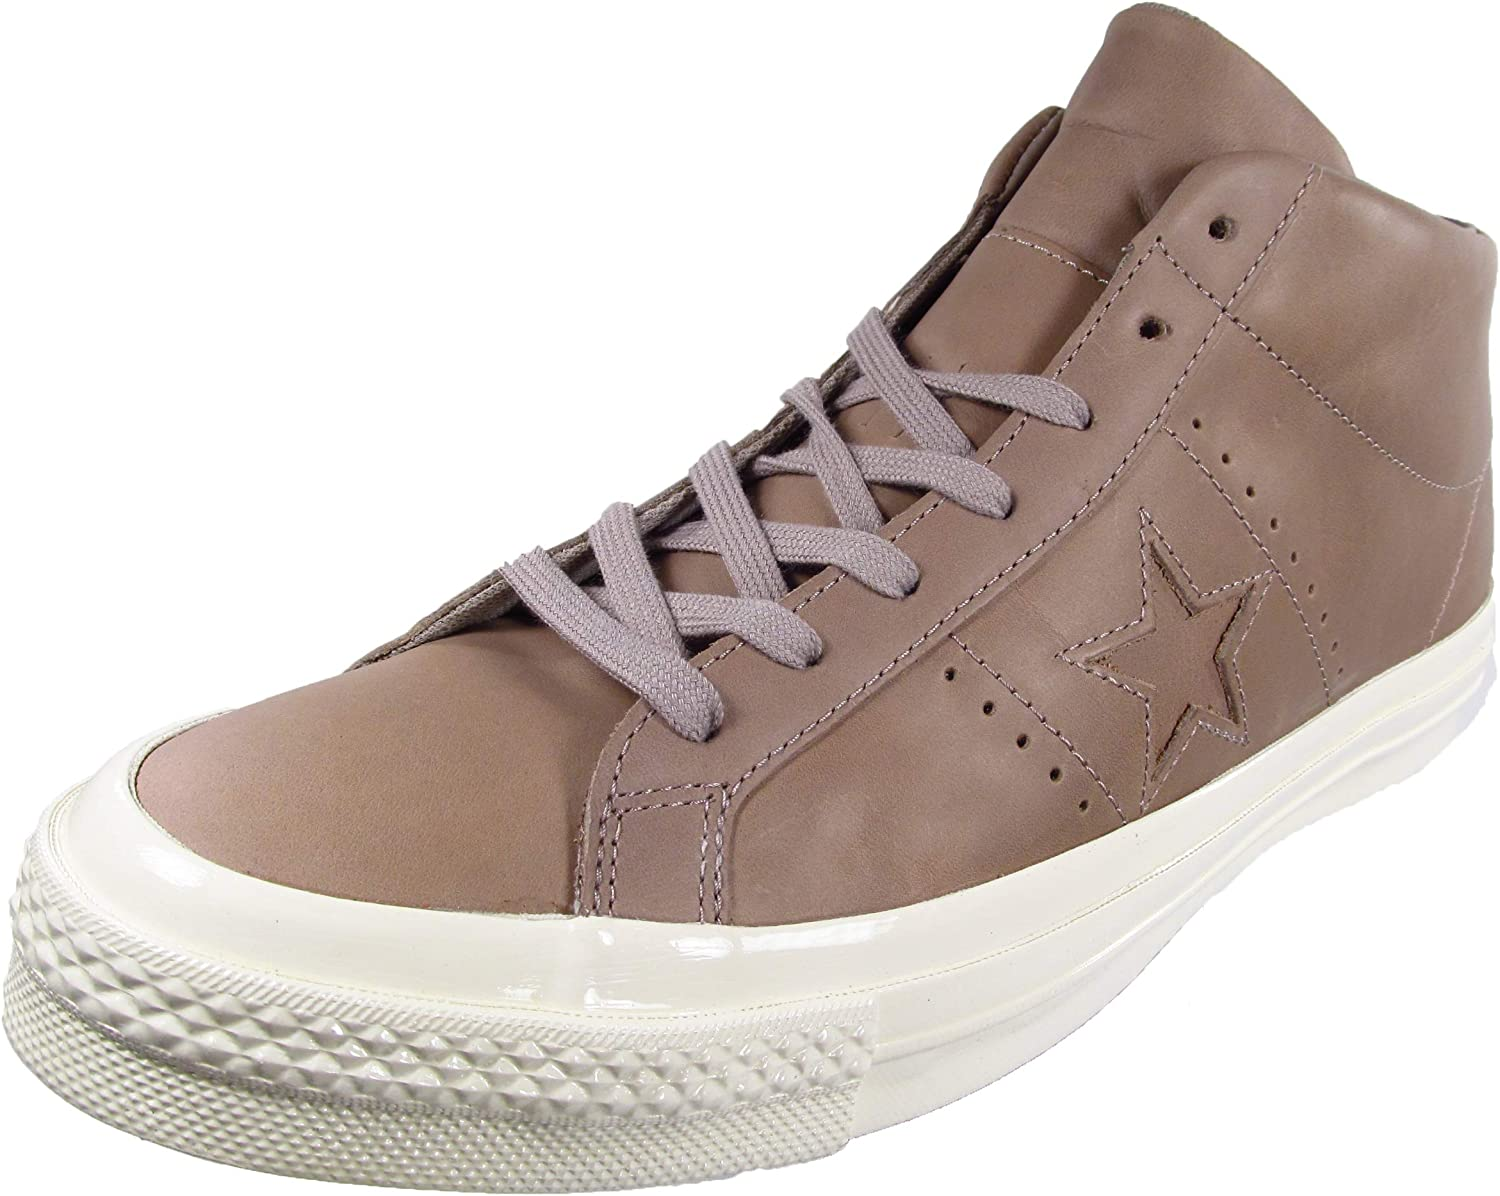 Converse One Star Mid Top Leather